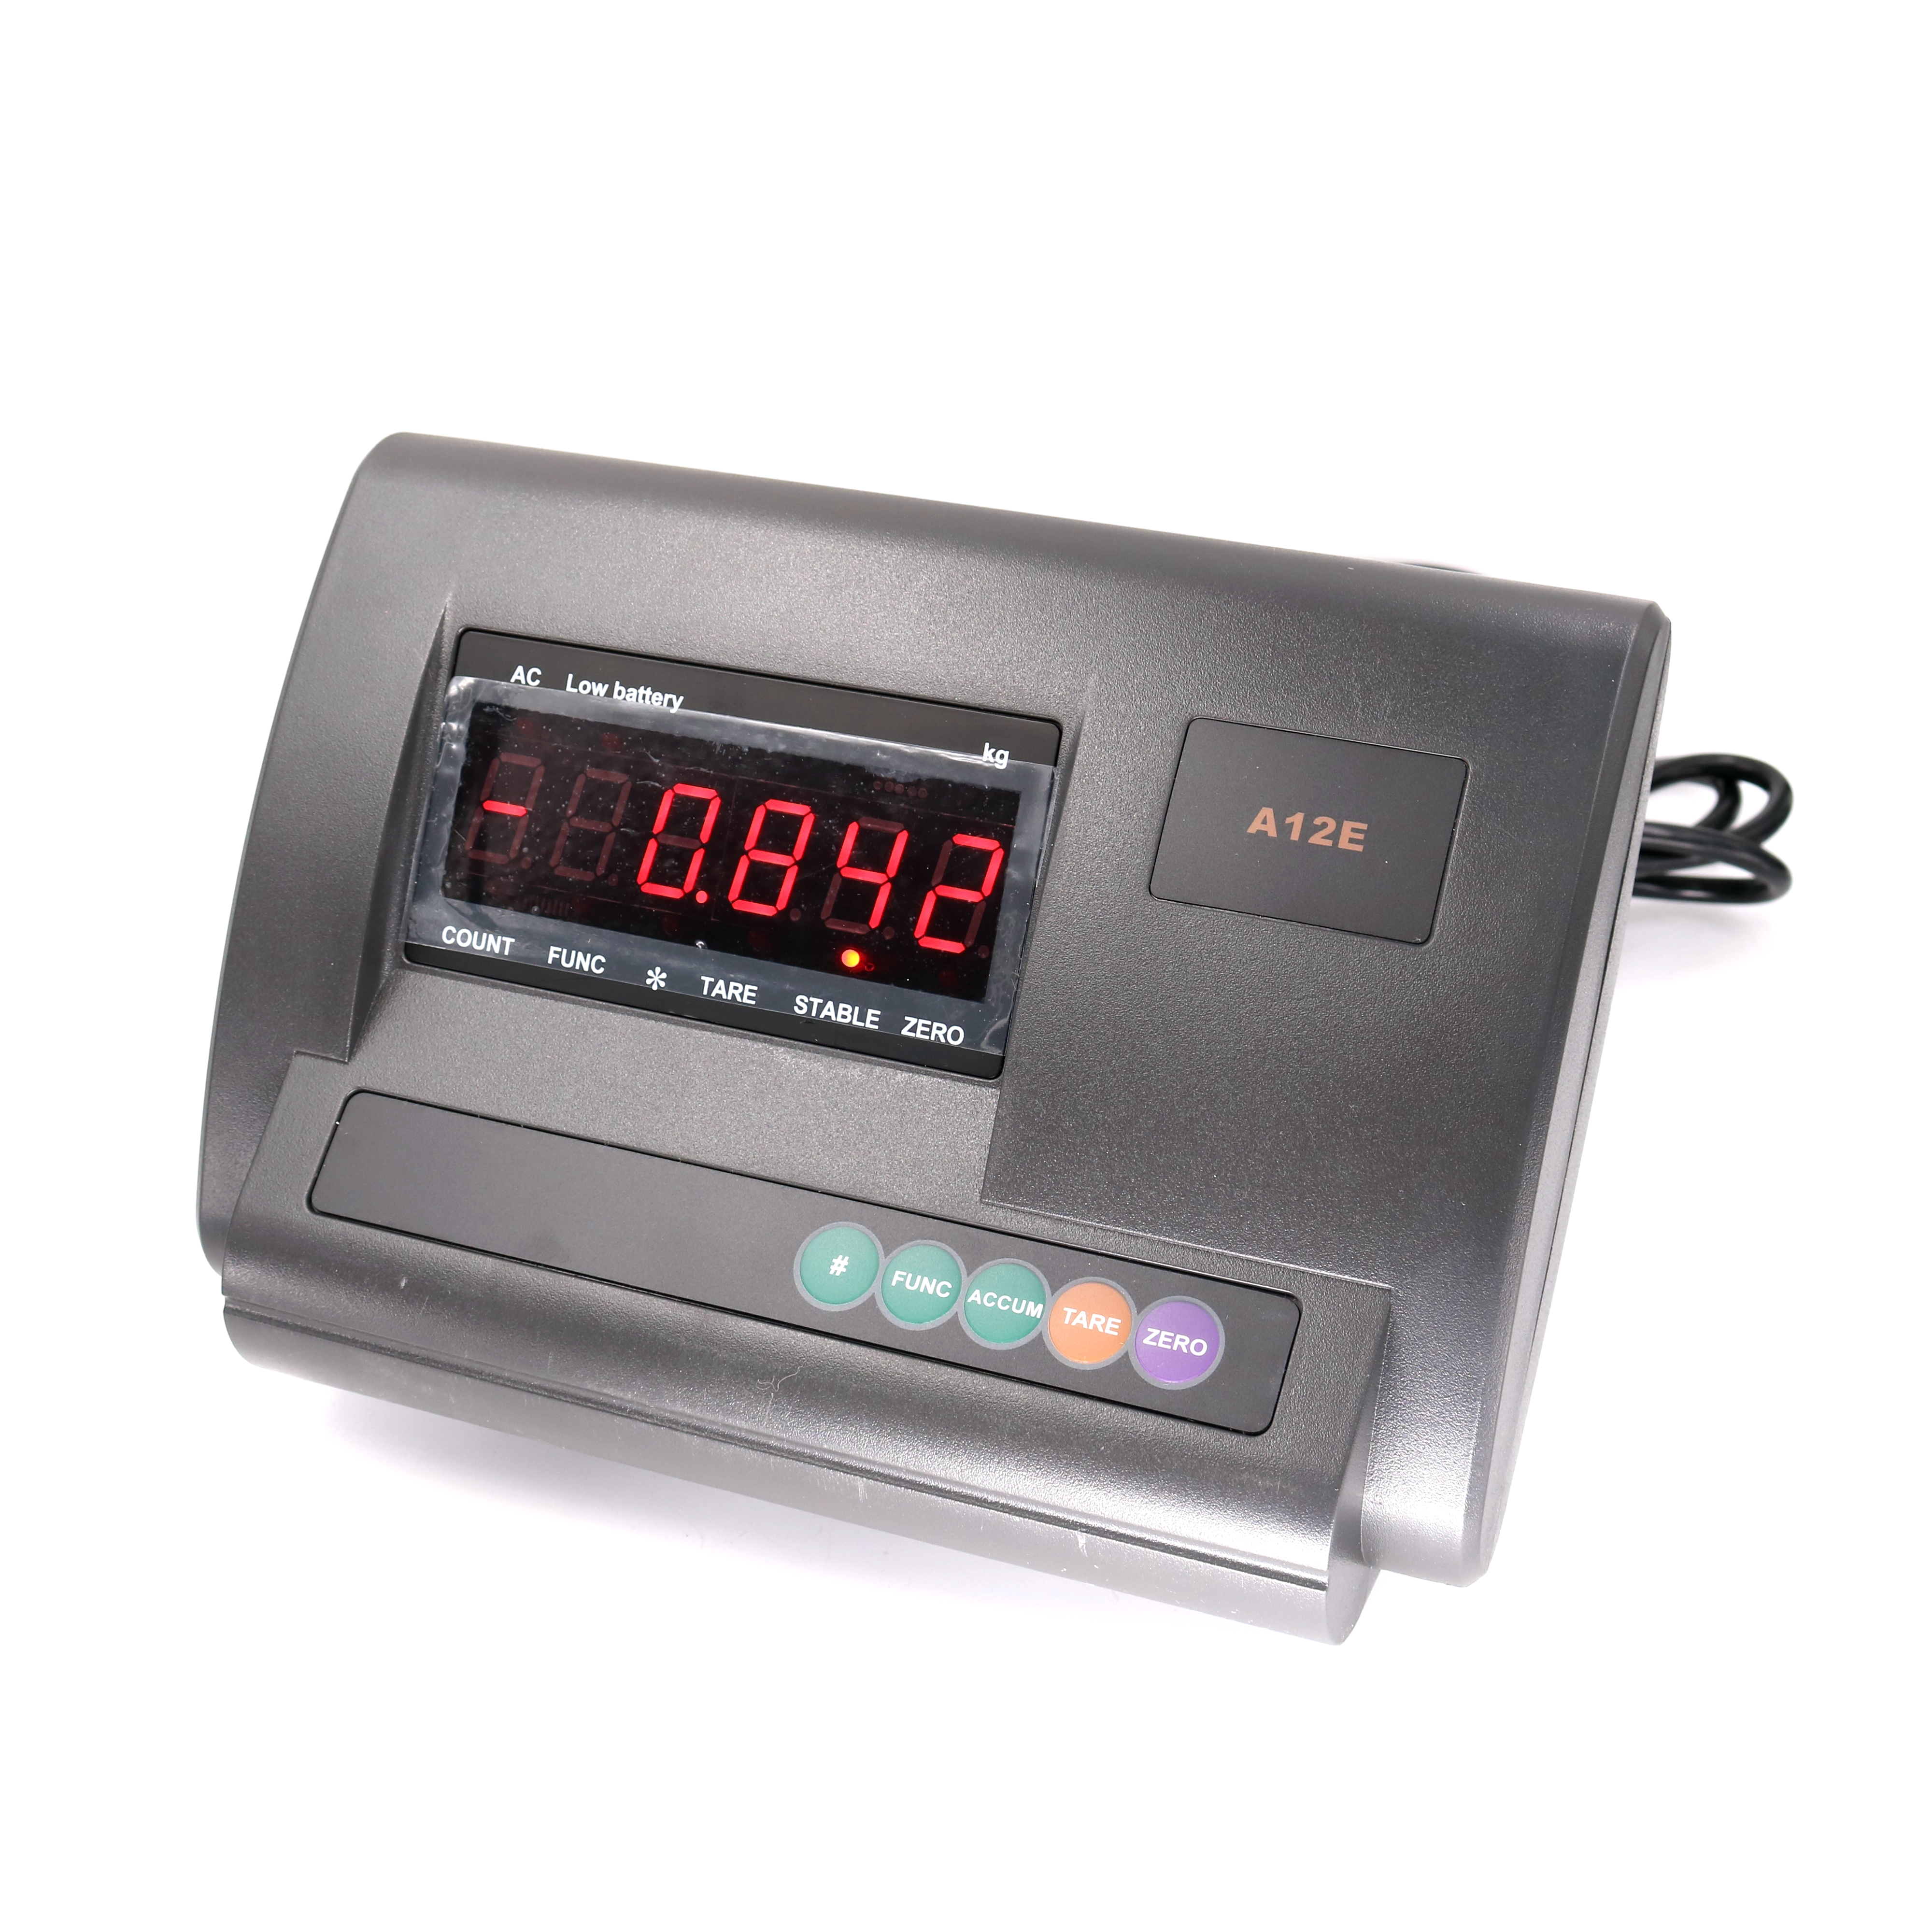 XK3190-A12E Platform Scale English LED Display panel Weight Indicatorload meter Controller loadometer weight meter moduleXK3190-A12E Platform Scale English LED Display panel Weight Indicatorload meter Controller loadometer weight meter module